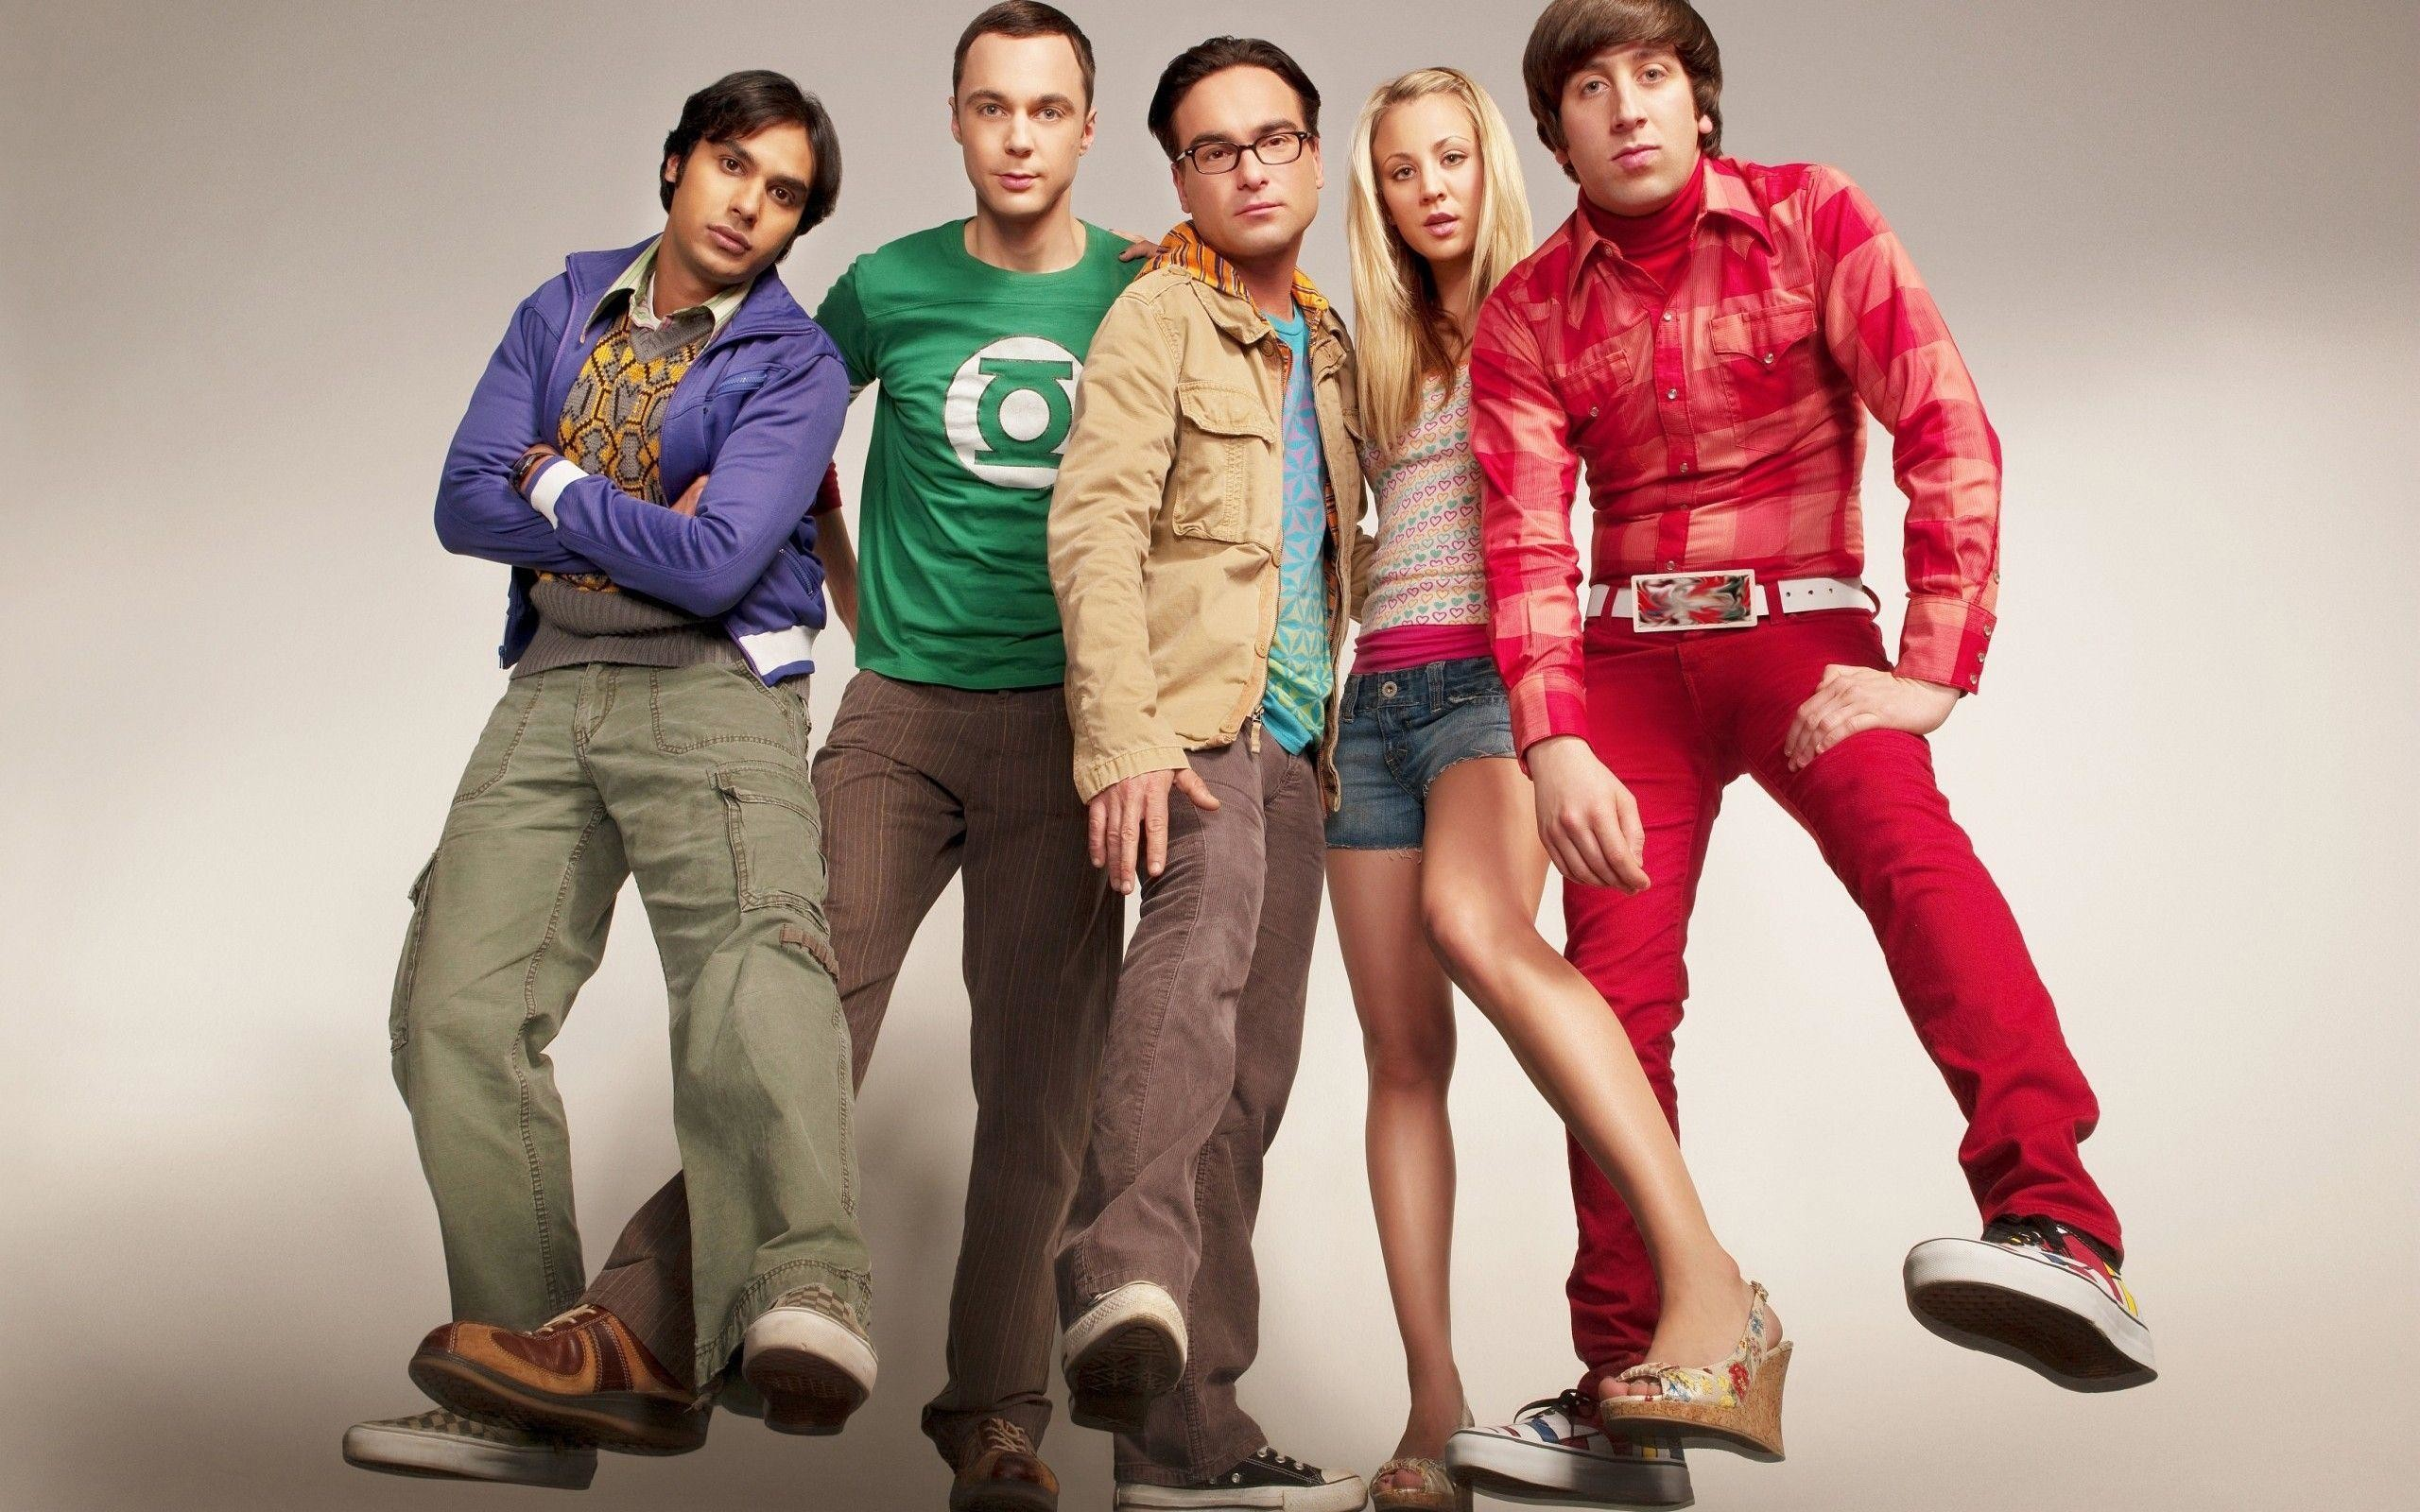 Res: 2560x1600, Free Cast of Big Bang Theory Wallpapers, Free Cast of Big Bang .